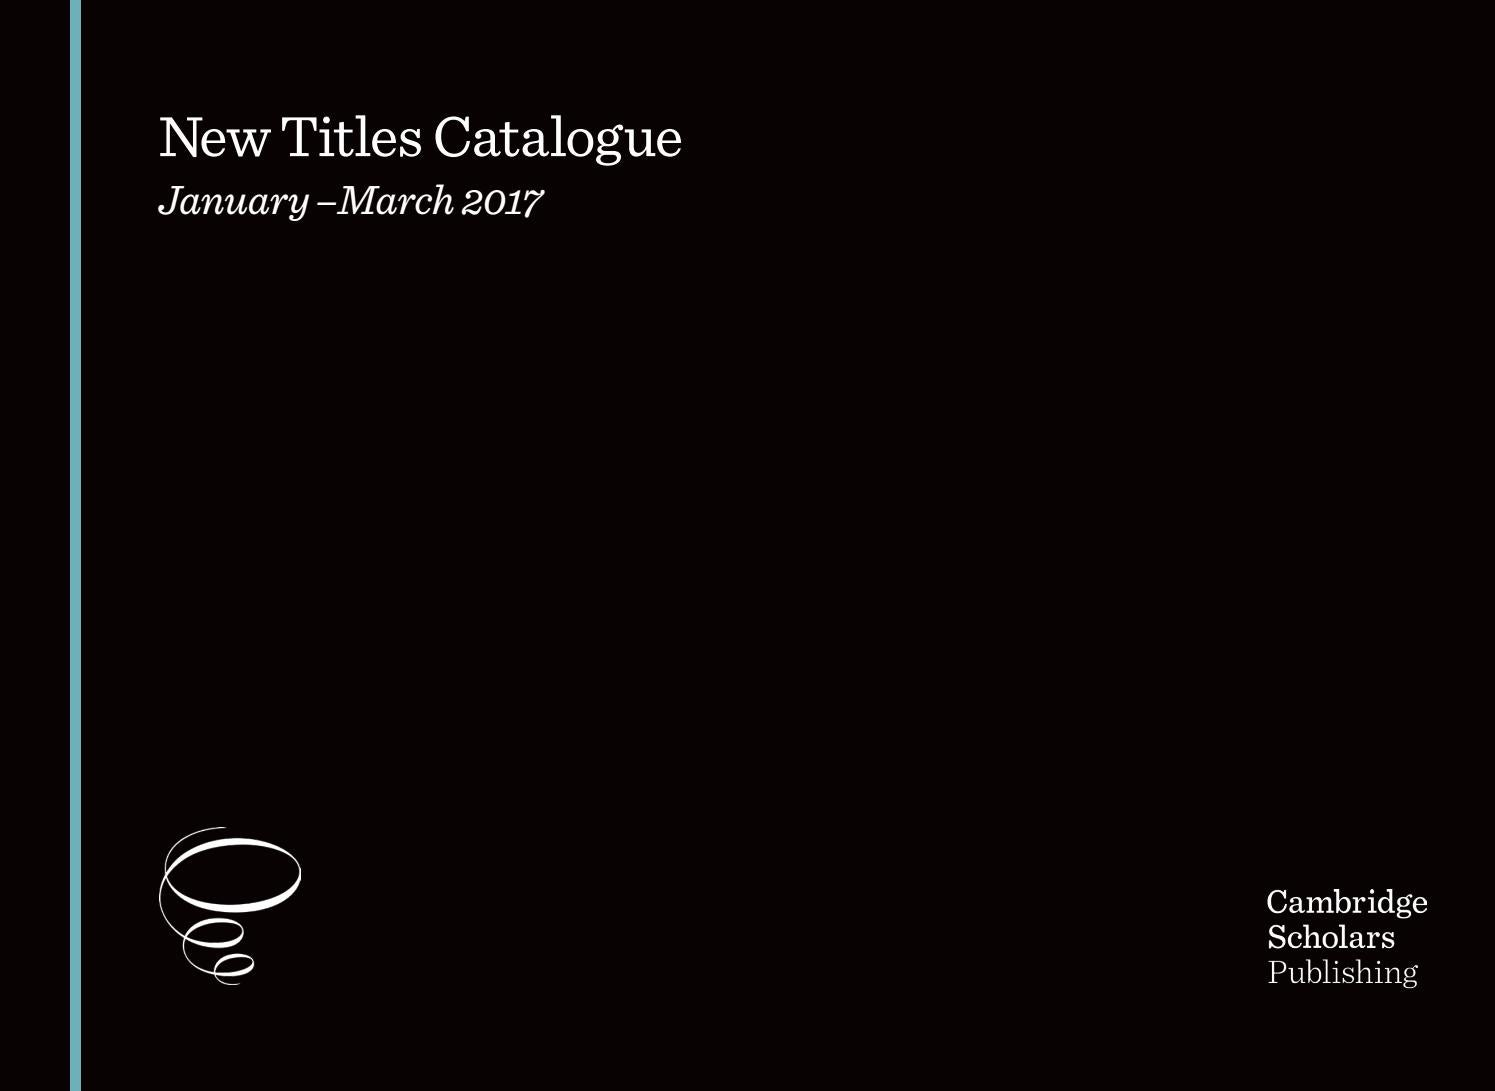 Csp catalogue january march 2017 by SCIENTIFIC BOOKS